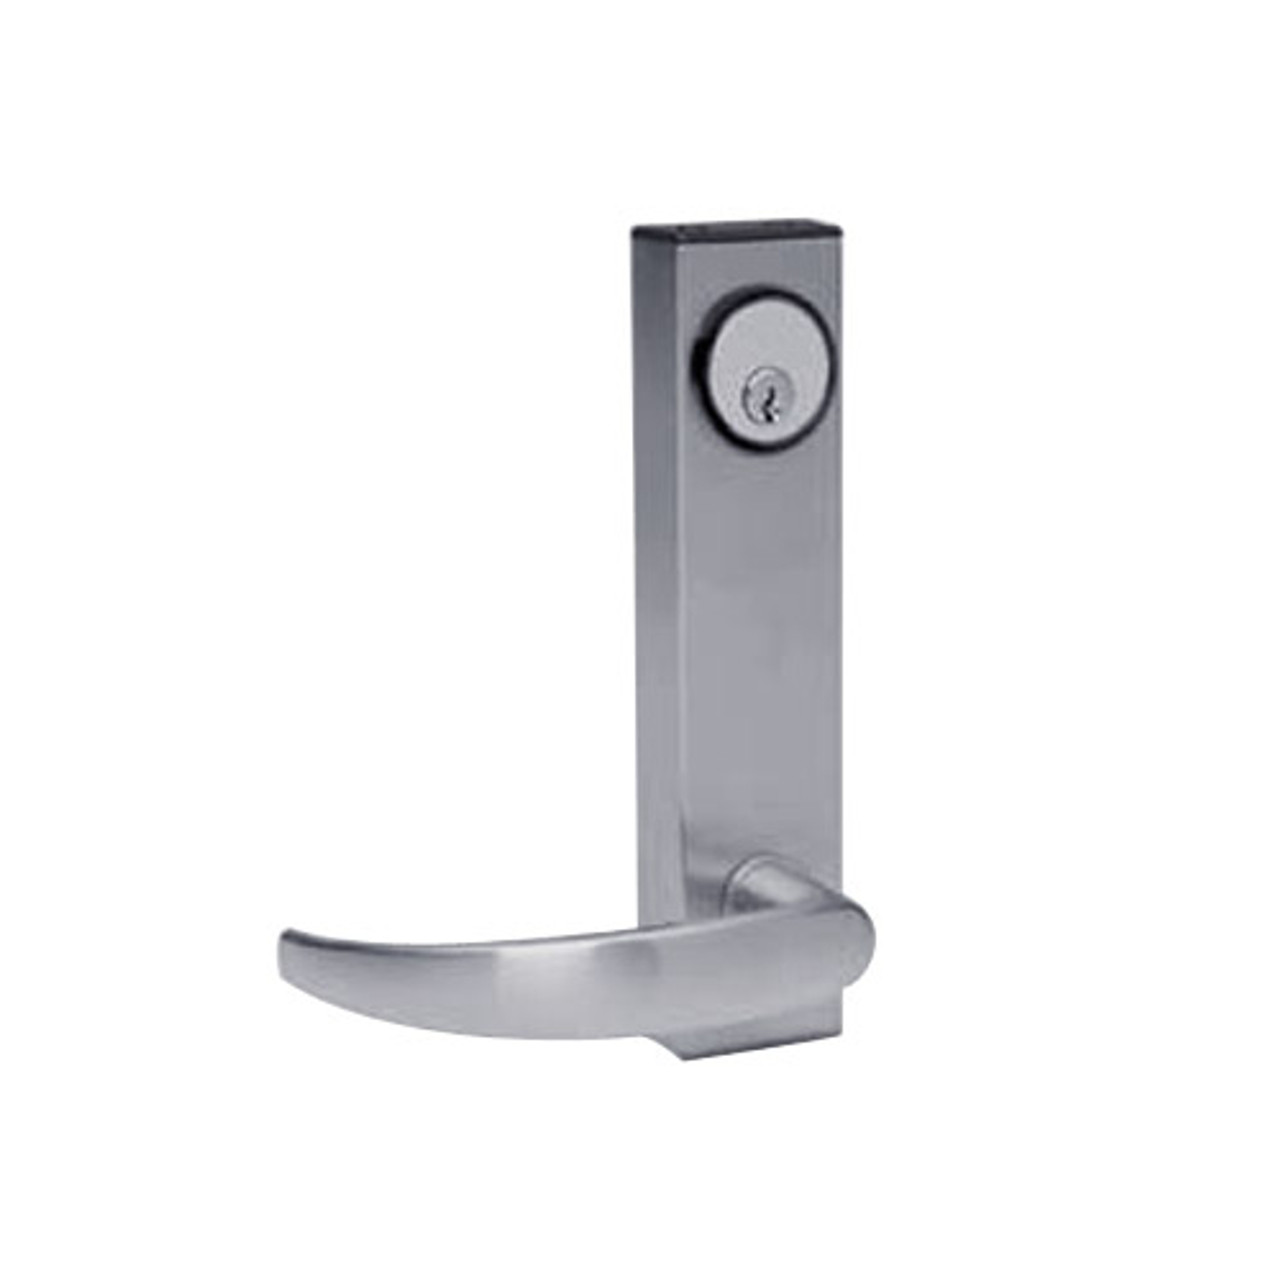 3080E-01-0-34-55 US32D Adams Rite Electrified Entry Trim with Curve Lever in Satin Stainless Finish